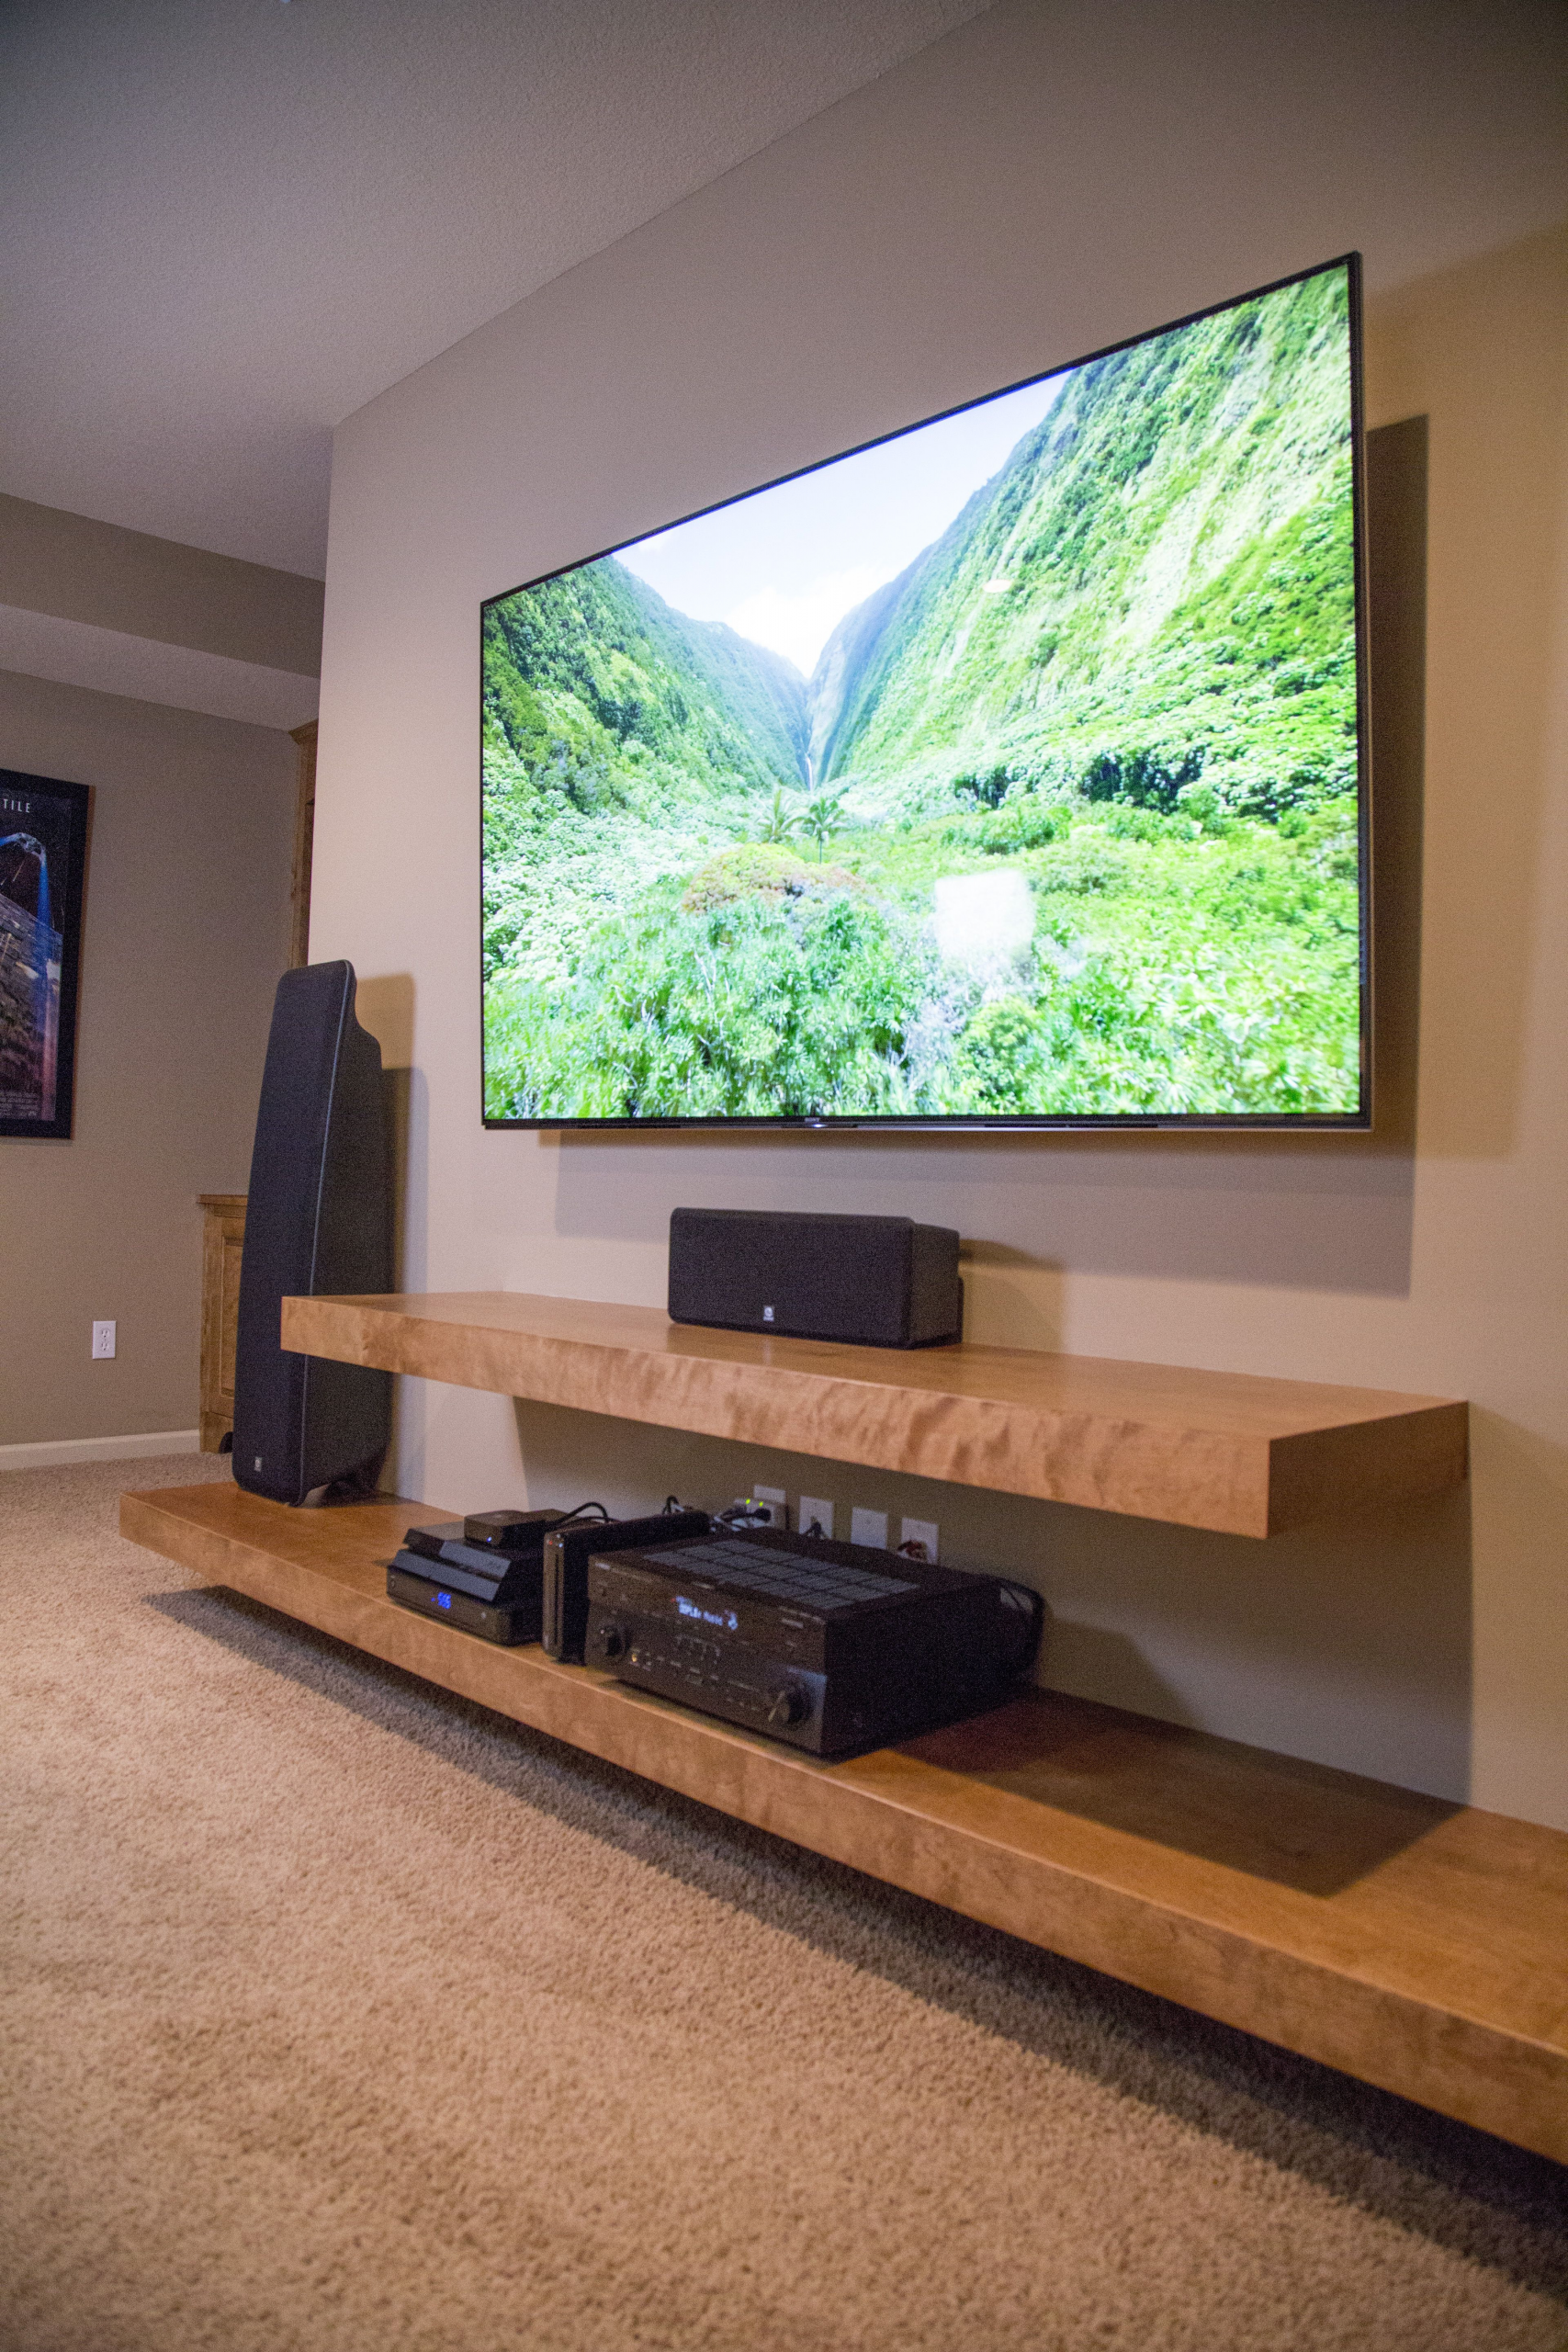 Unique Tv Stand Ideas for Living Room Small Spaces ...